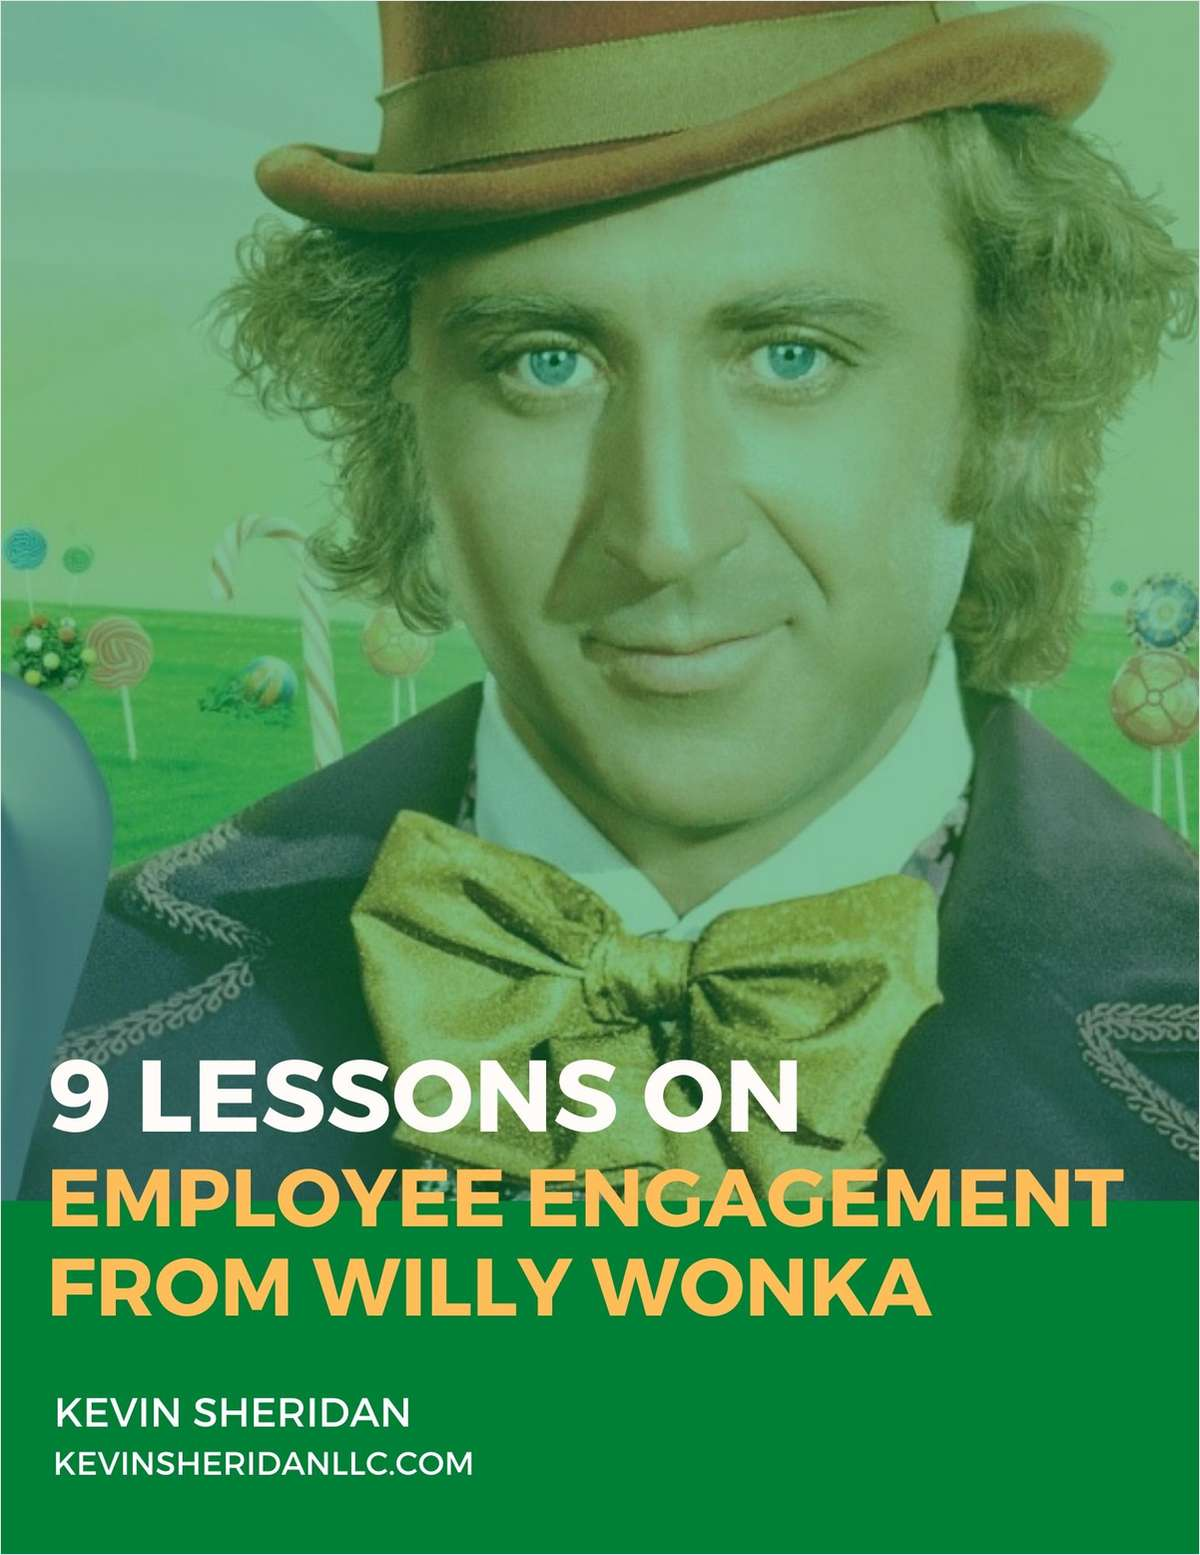 9 Lessons on Employee Engagement from Willy Wonka